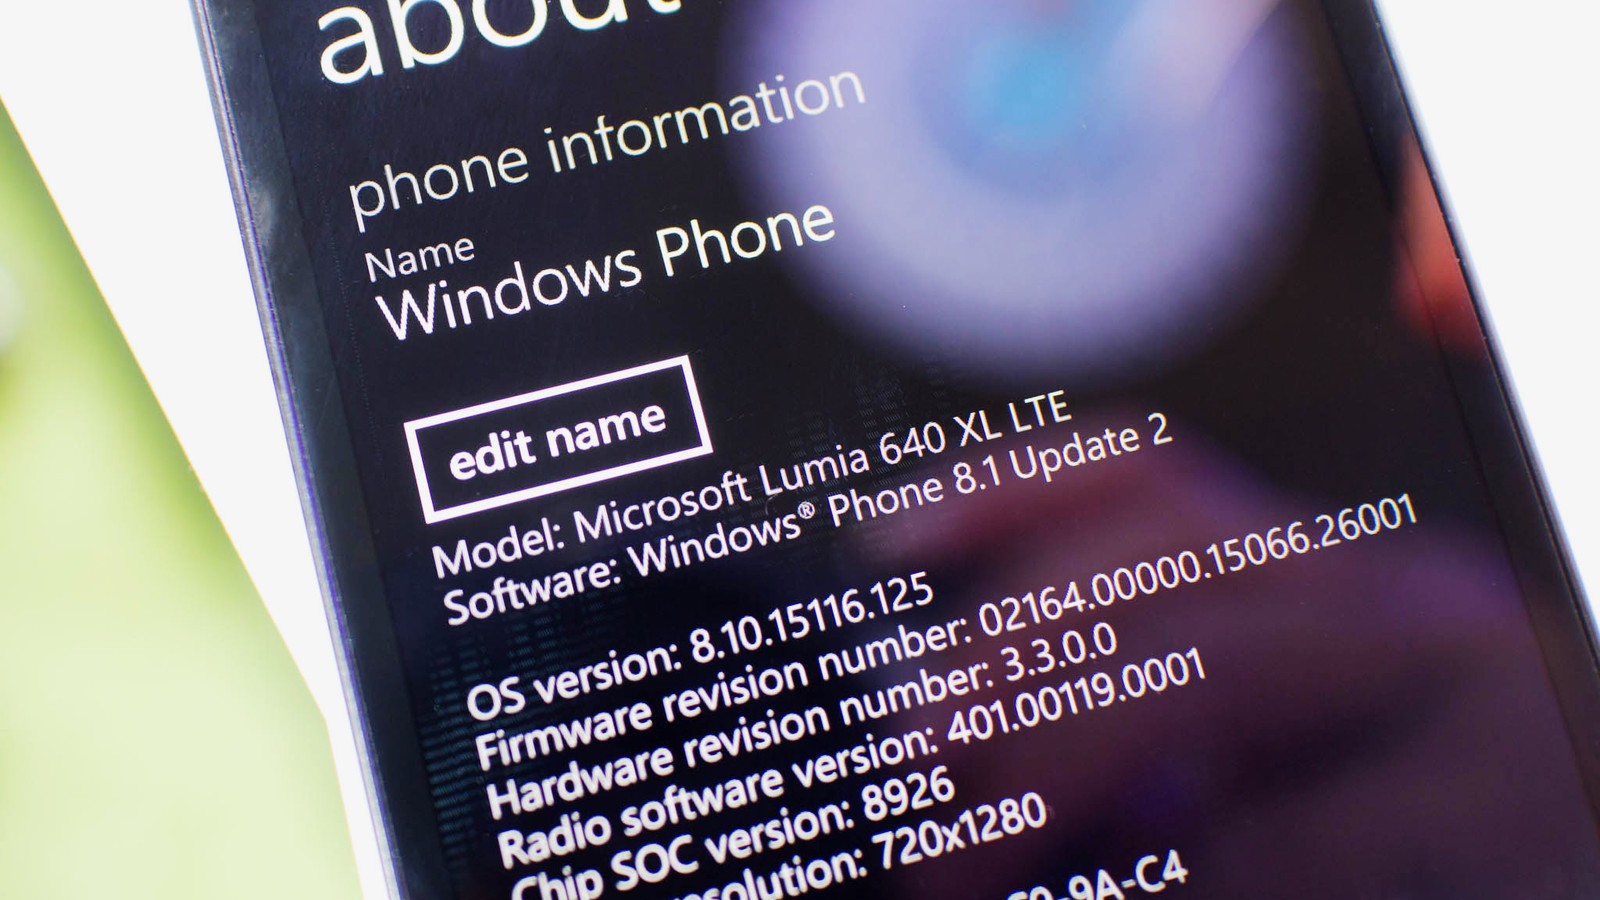 How to Get Windows Phone 8.1